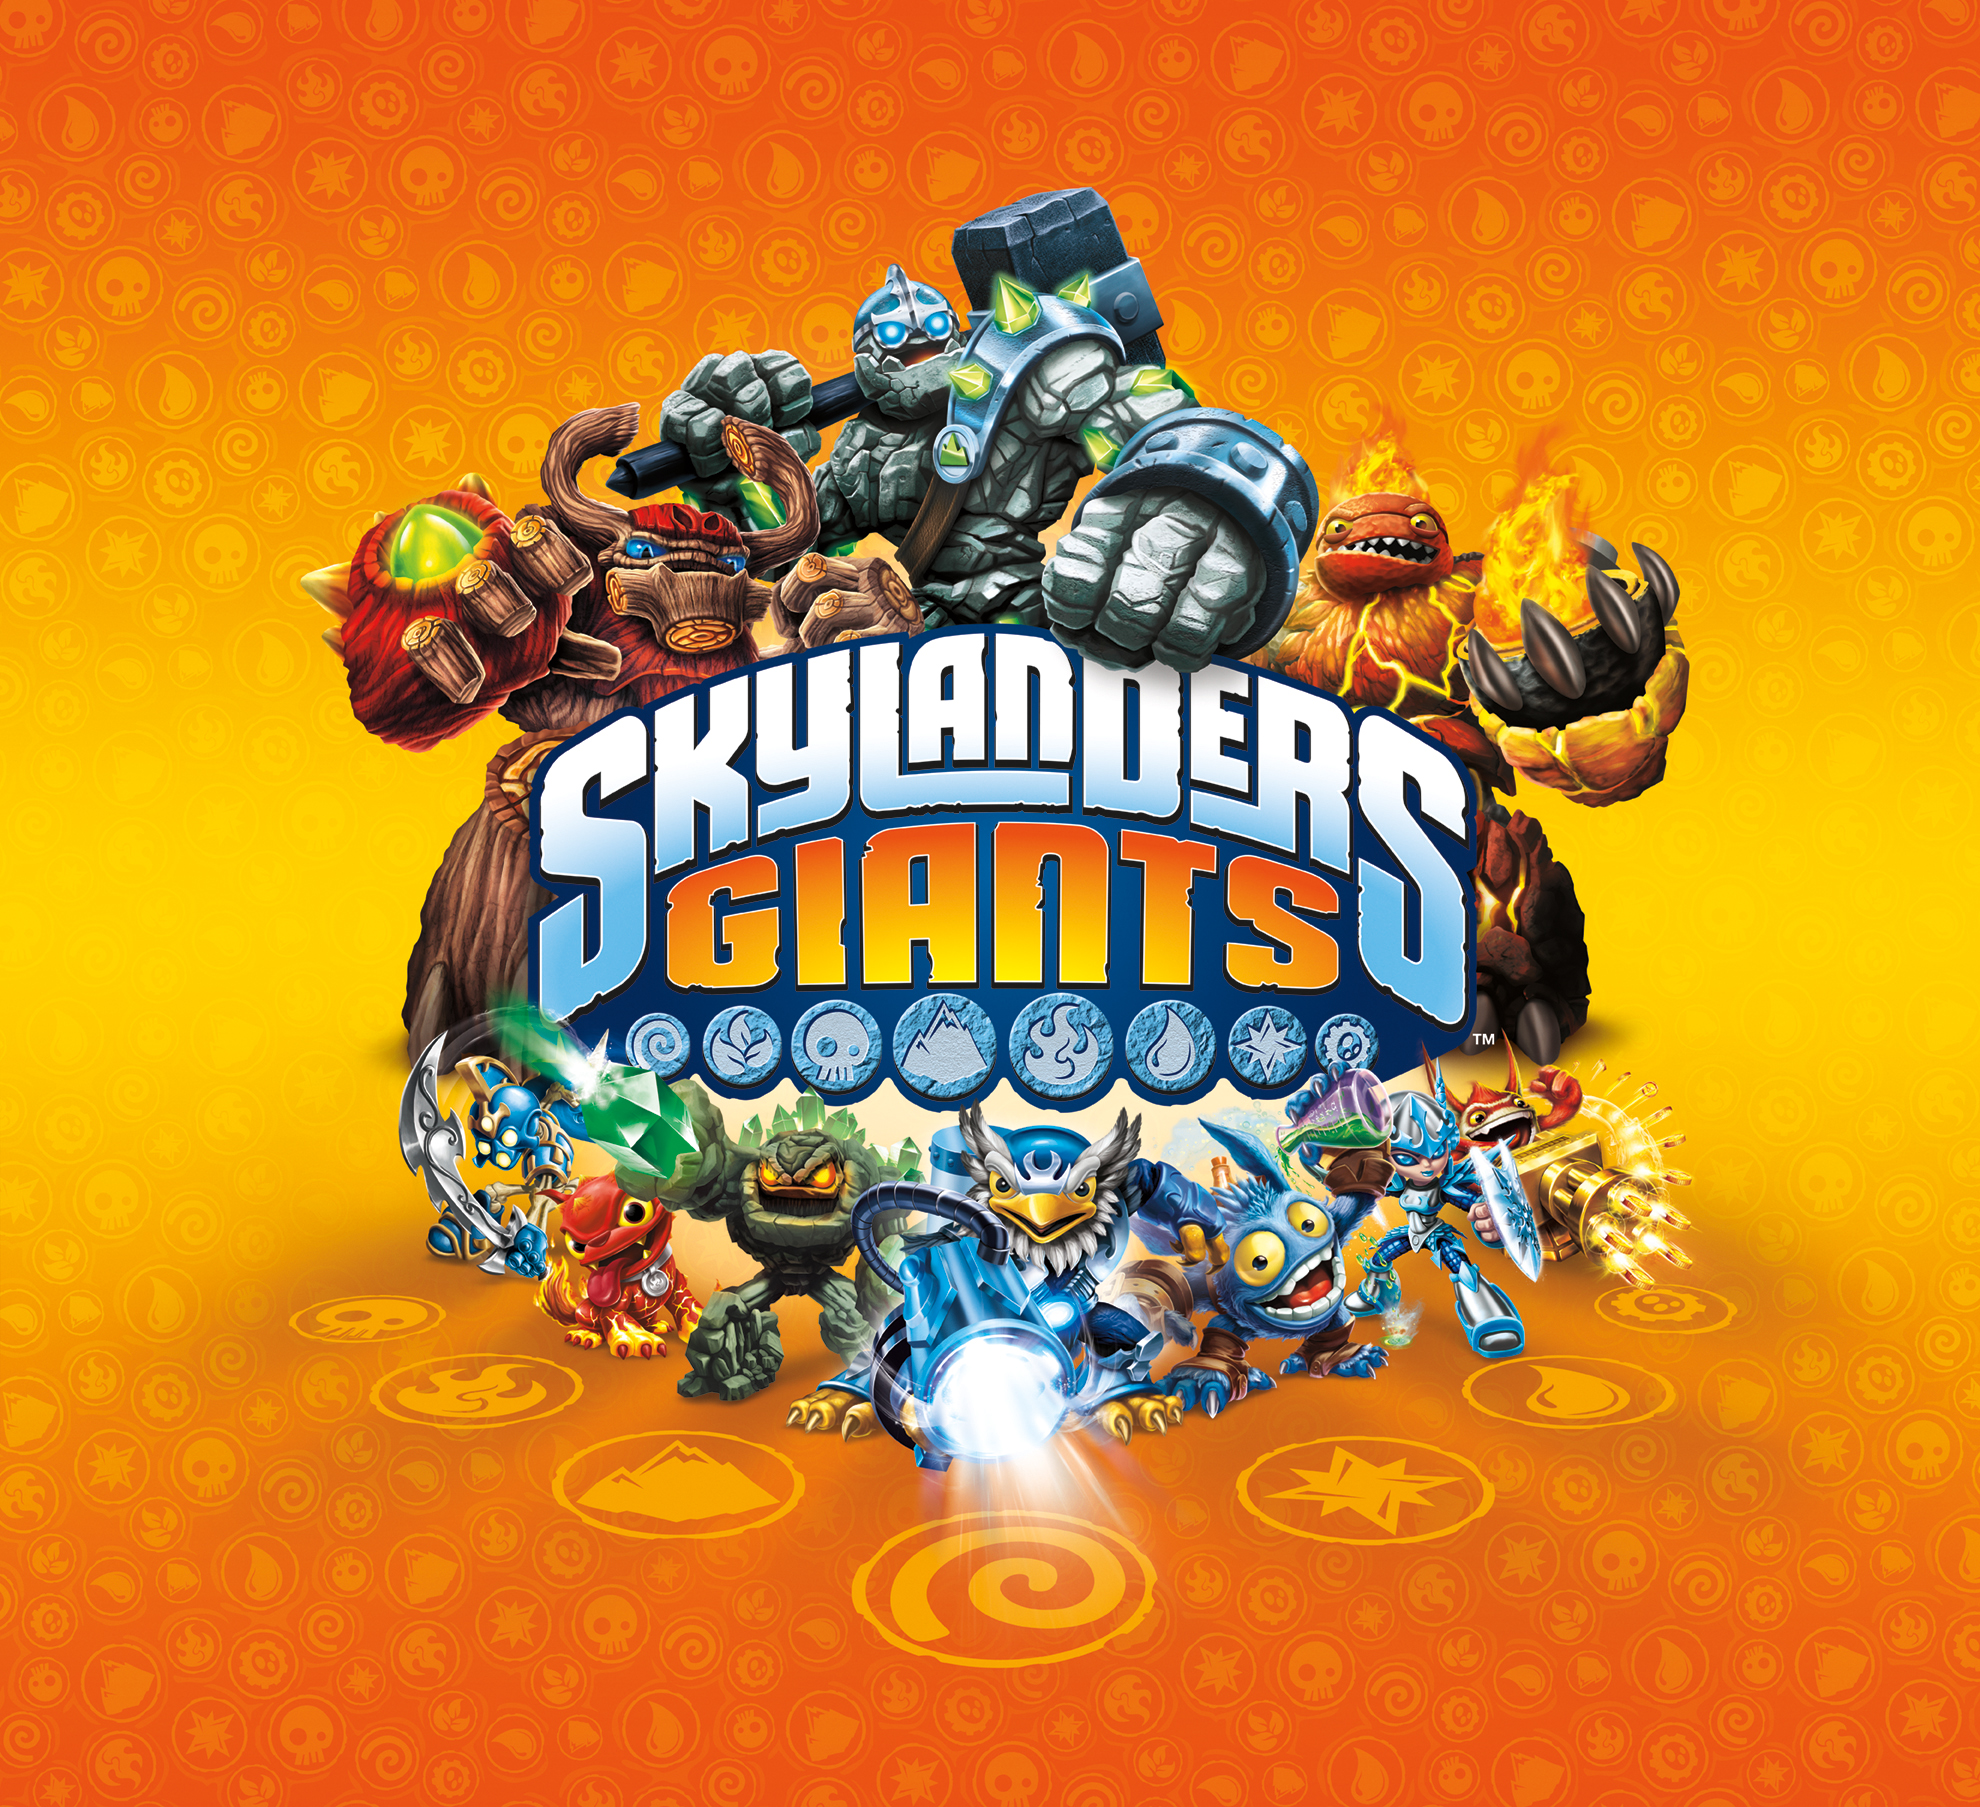 skylanders giants logo spyro the dragon know your meme